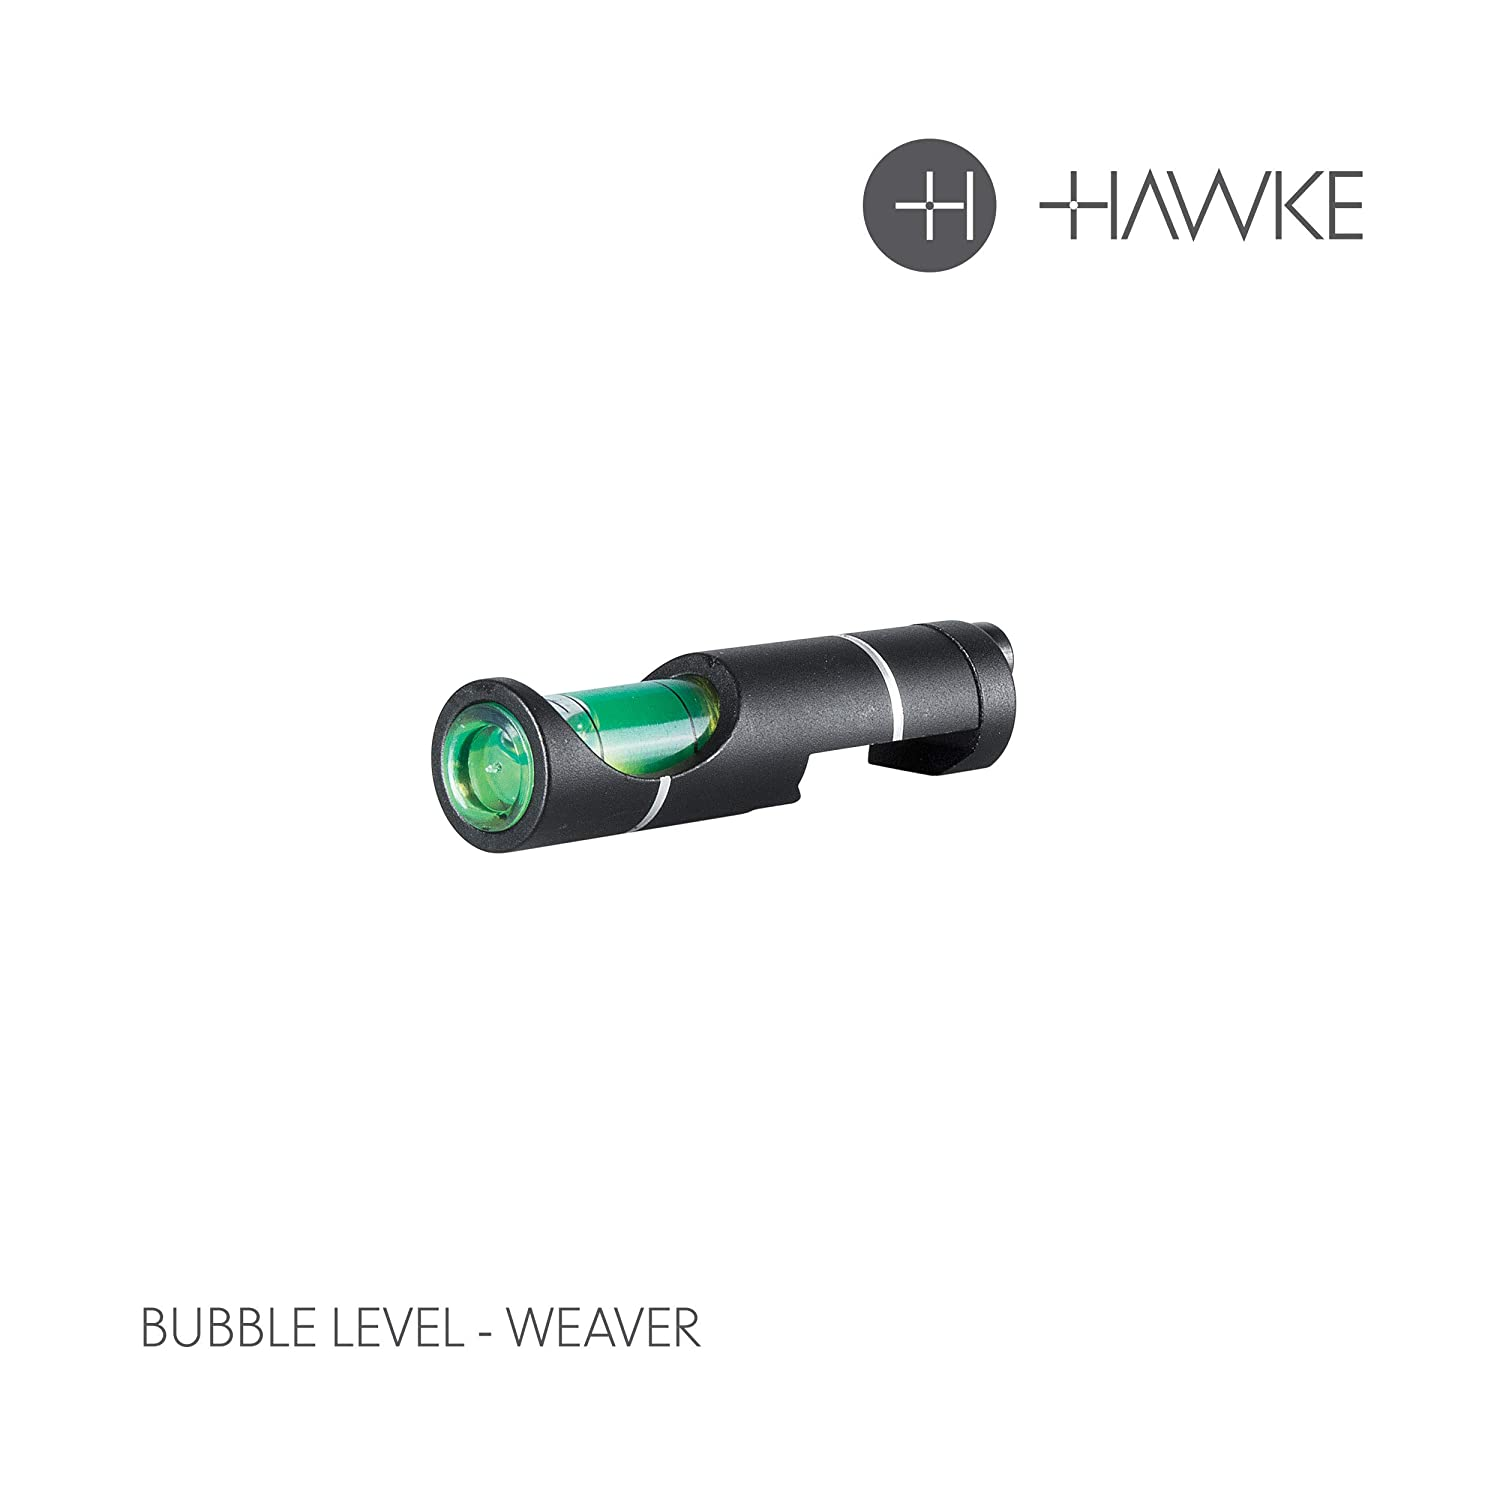 HAWKE BUBBLE LEVEL WEAVER by Hawke